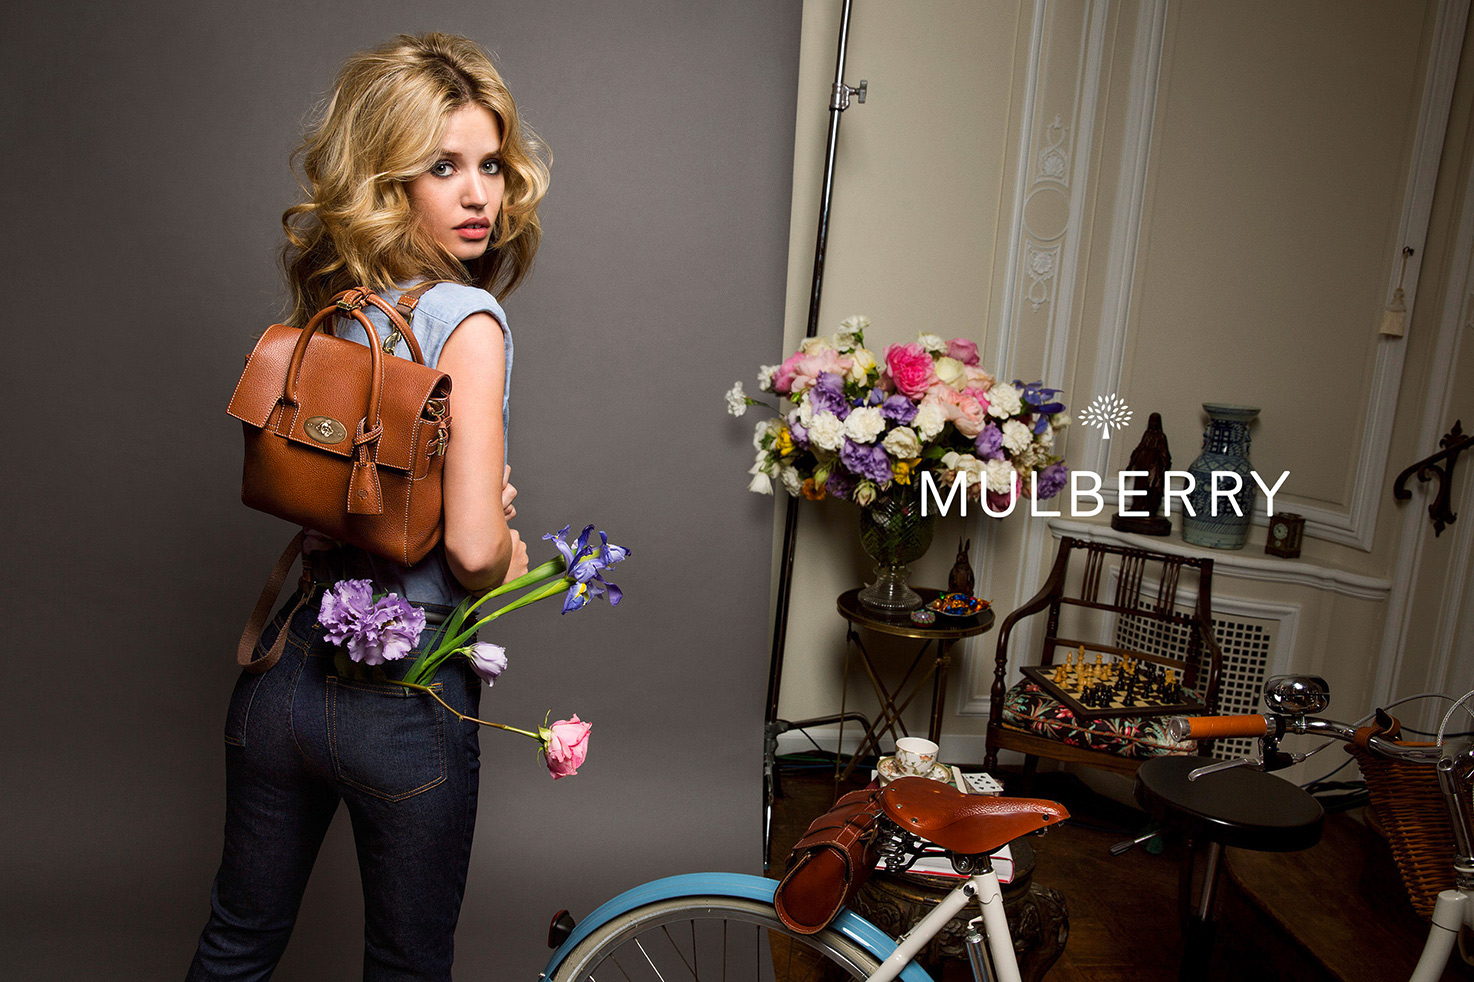 Mulberry: The Fall